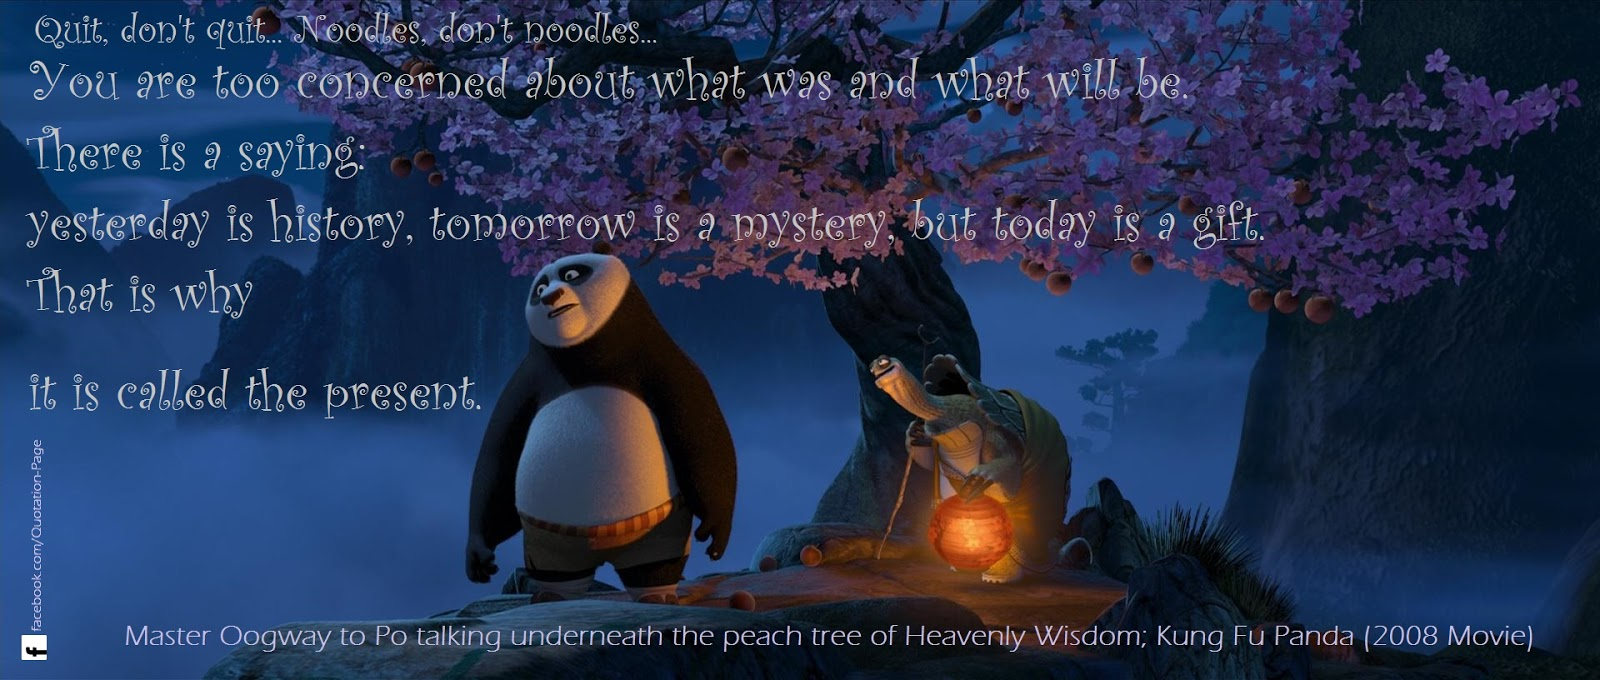 Quotation Page Kung Fu Panda Movie Quotes